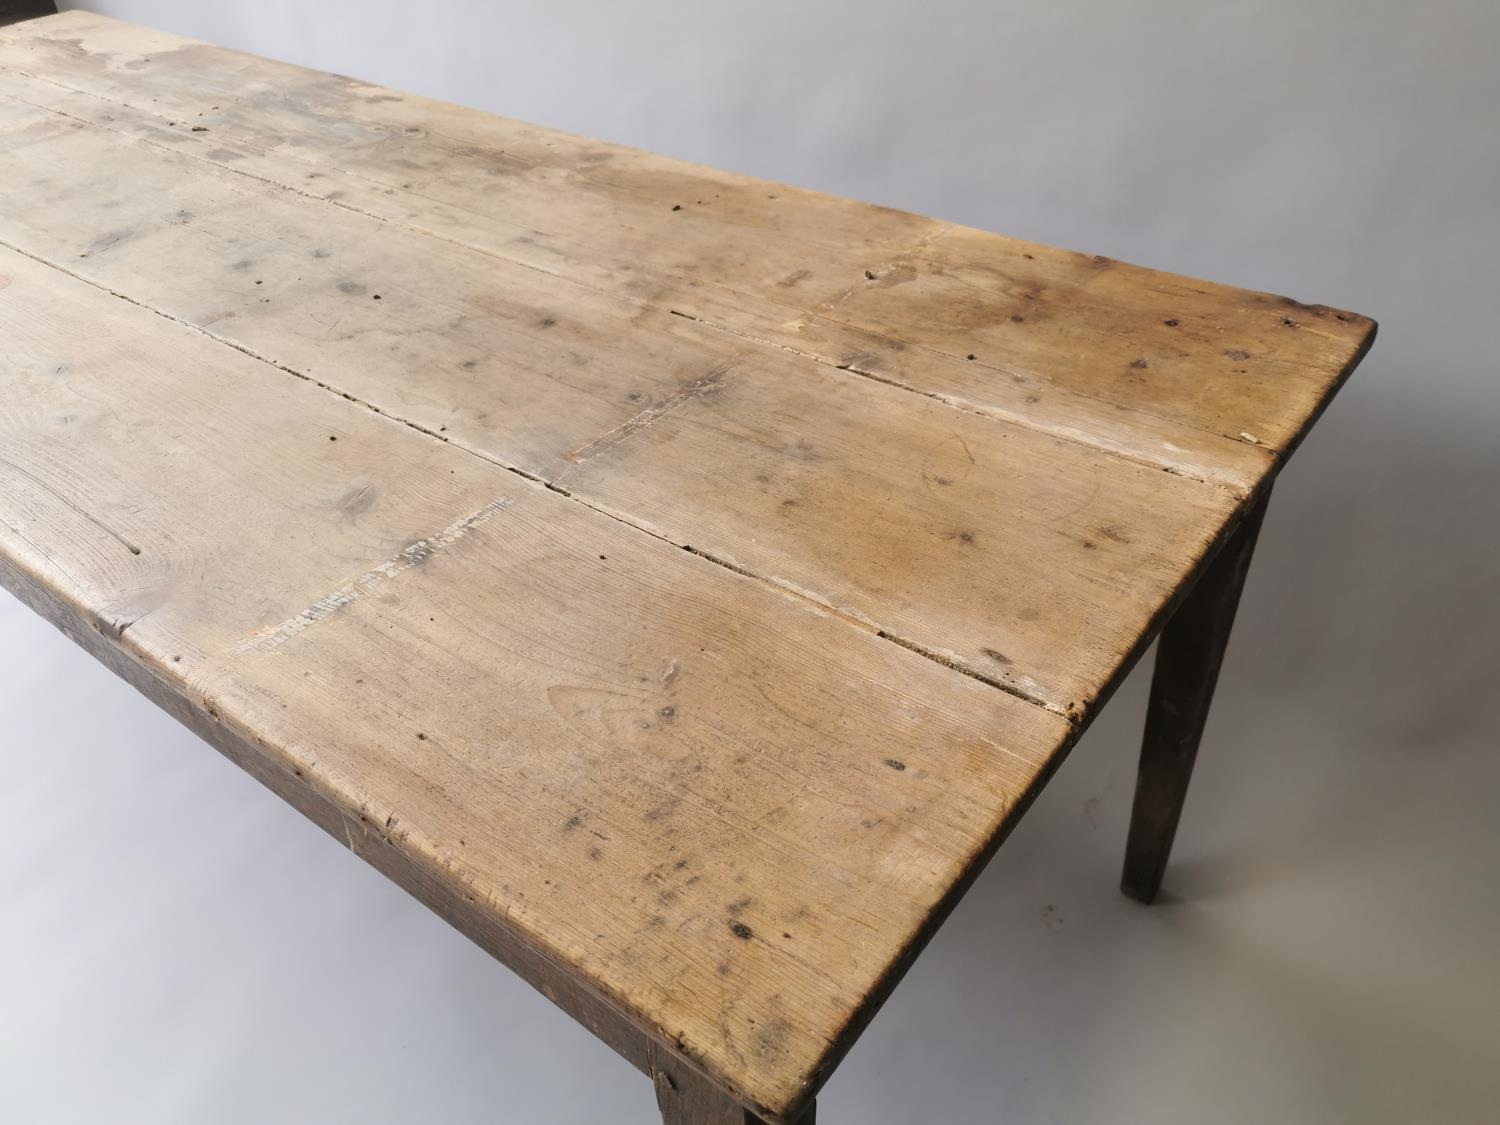 19th C. pine and oak kitchen table on square tapered legs 70 cm H x 198 cm L x 79 cm D - Image 5 of 5